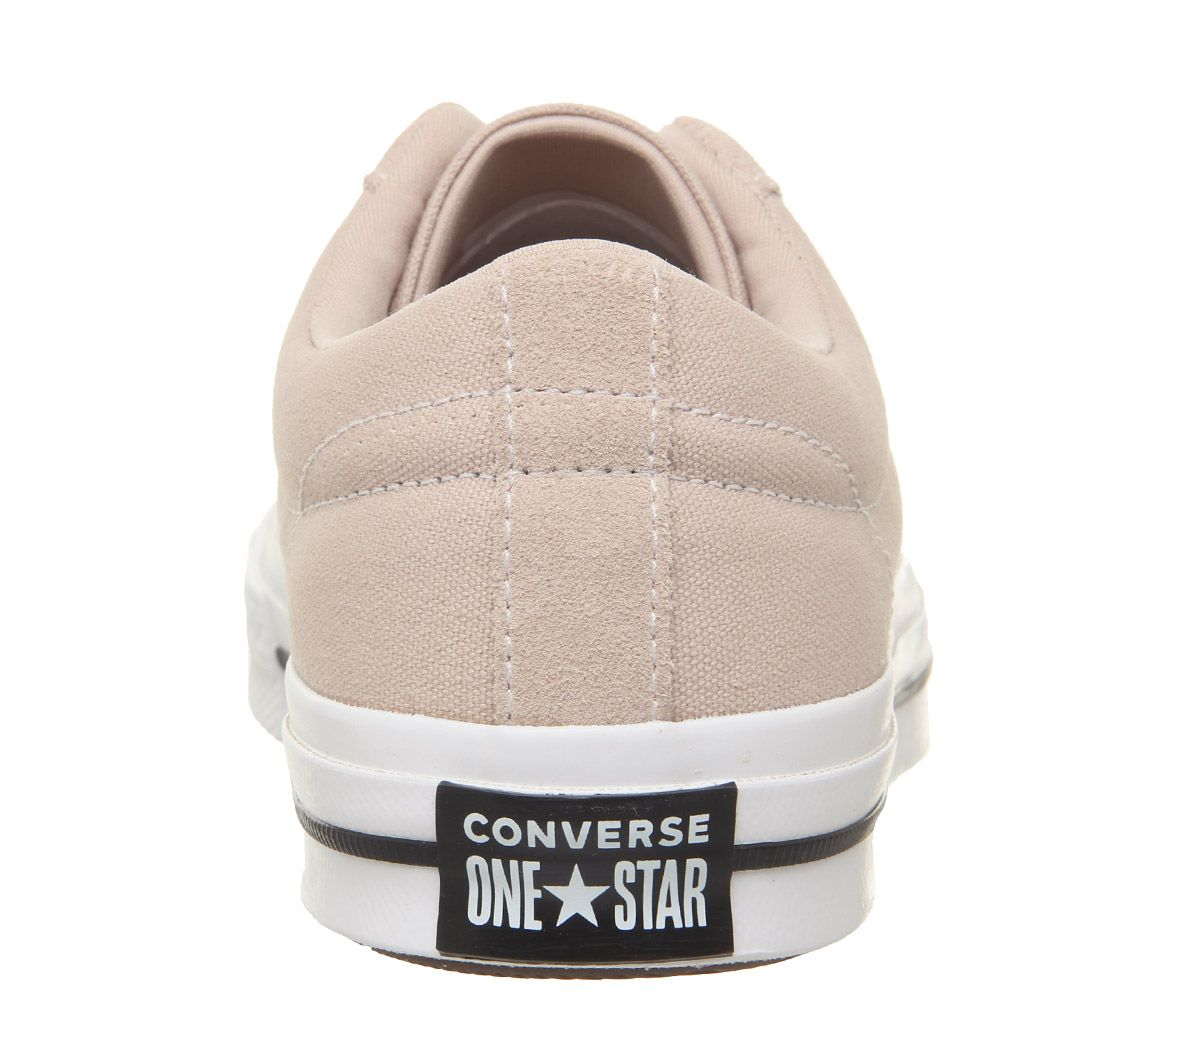 Womens-Converse-One-Star-Trainers-Particle-Beige-White-Black-Trainers-Shoes thumbnail 7